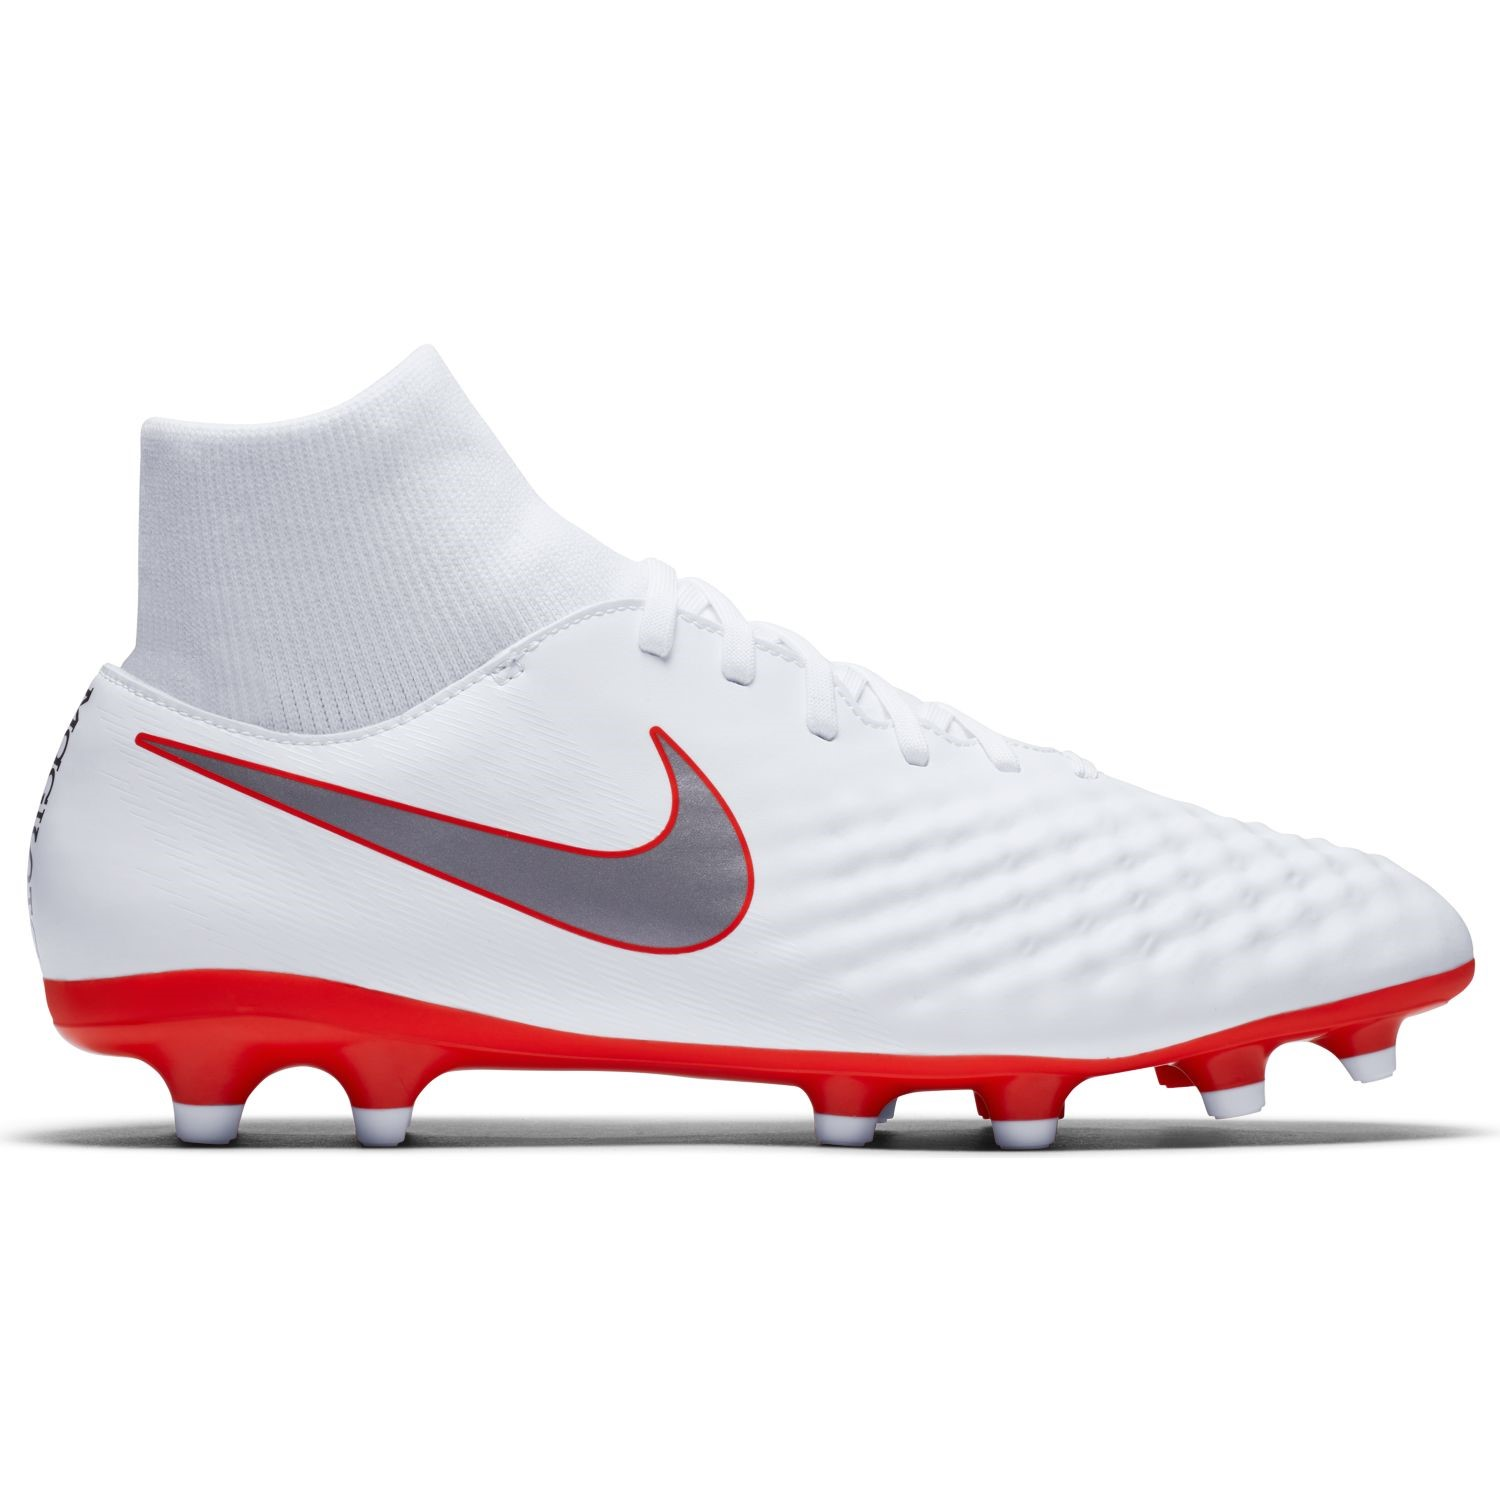 2ebfe30d1c38 Nike Magista Obra II Academy DF FG - Mens Football Boots - White Metallic